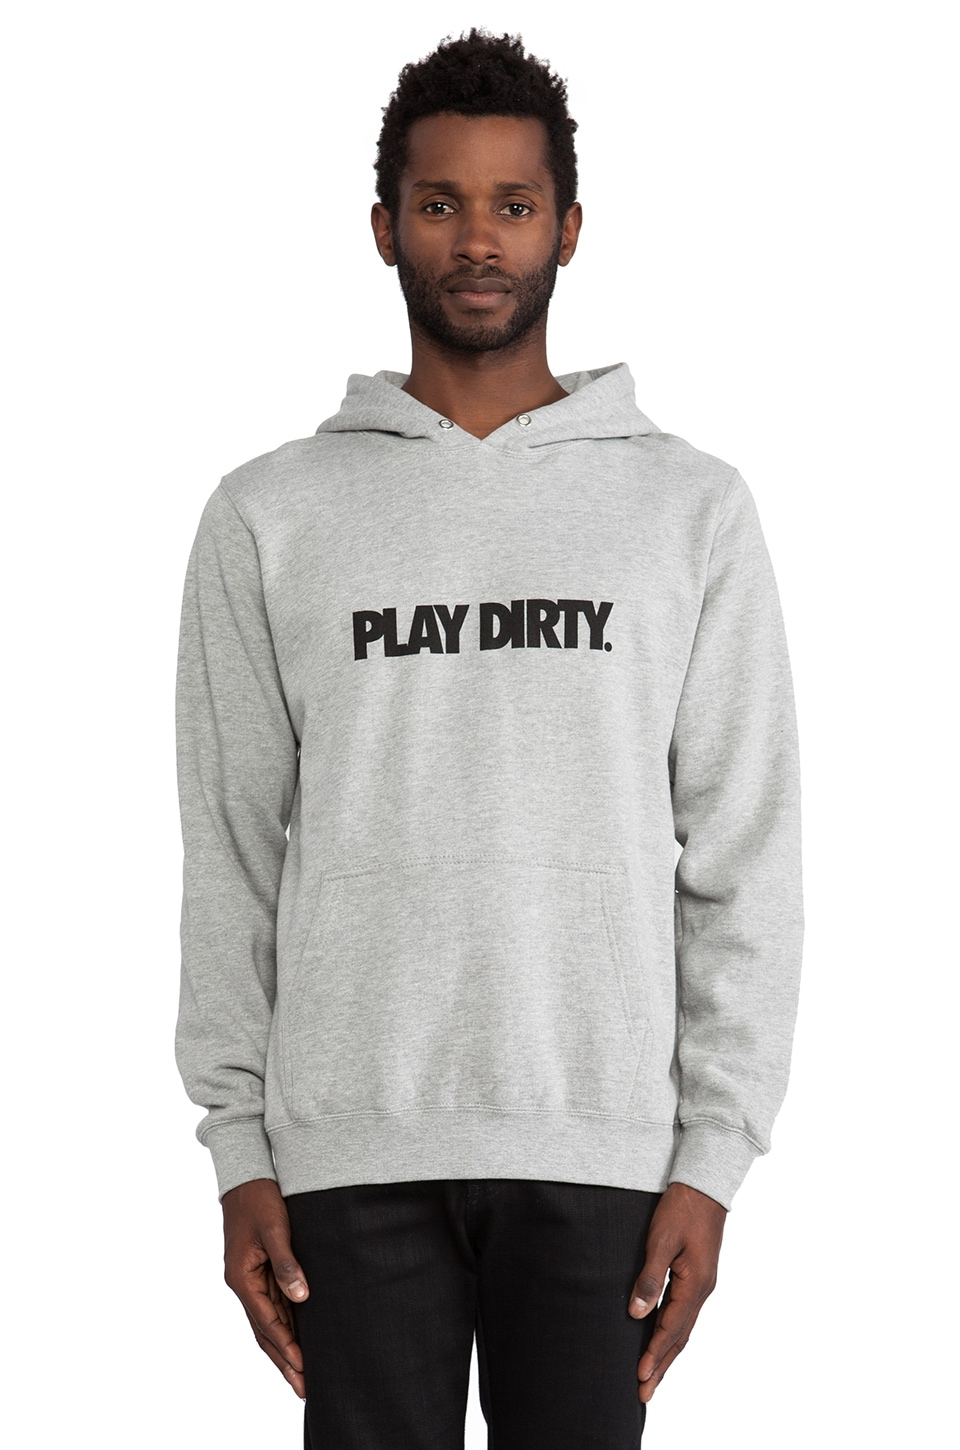 Undefeated Play Dirty Hoodie in Grey Heather